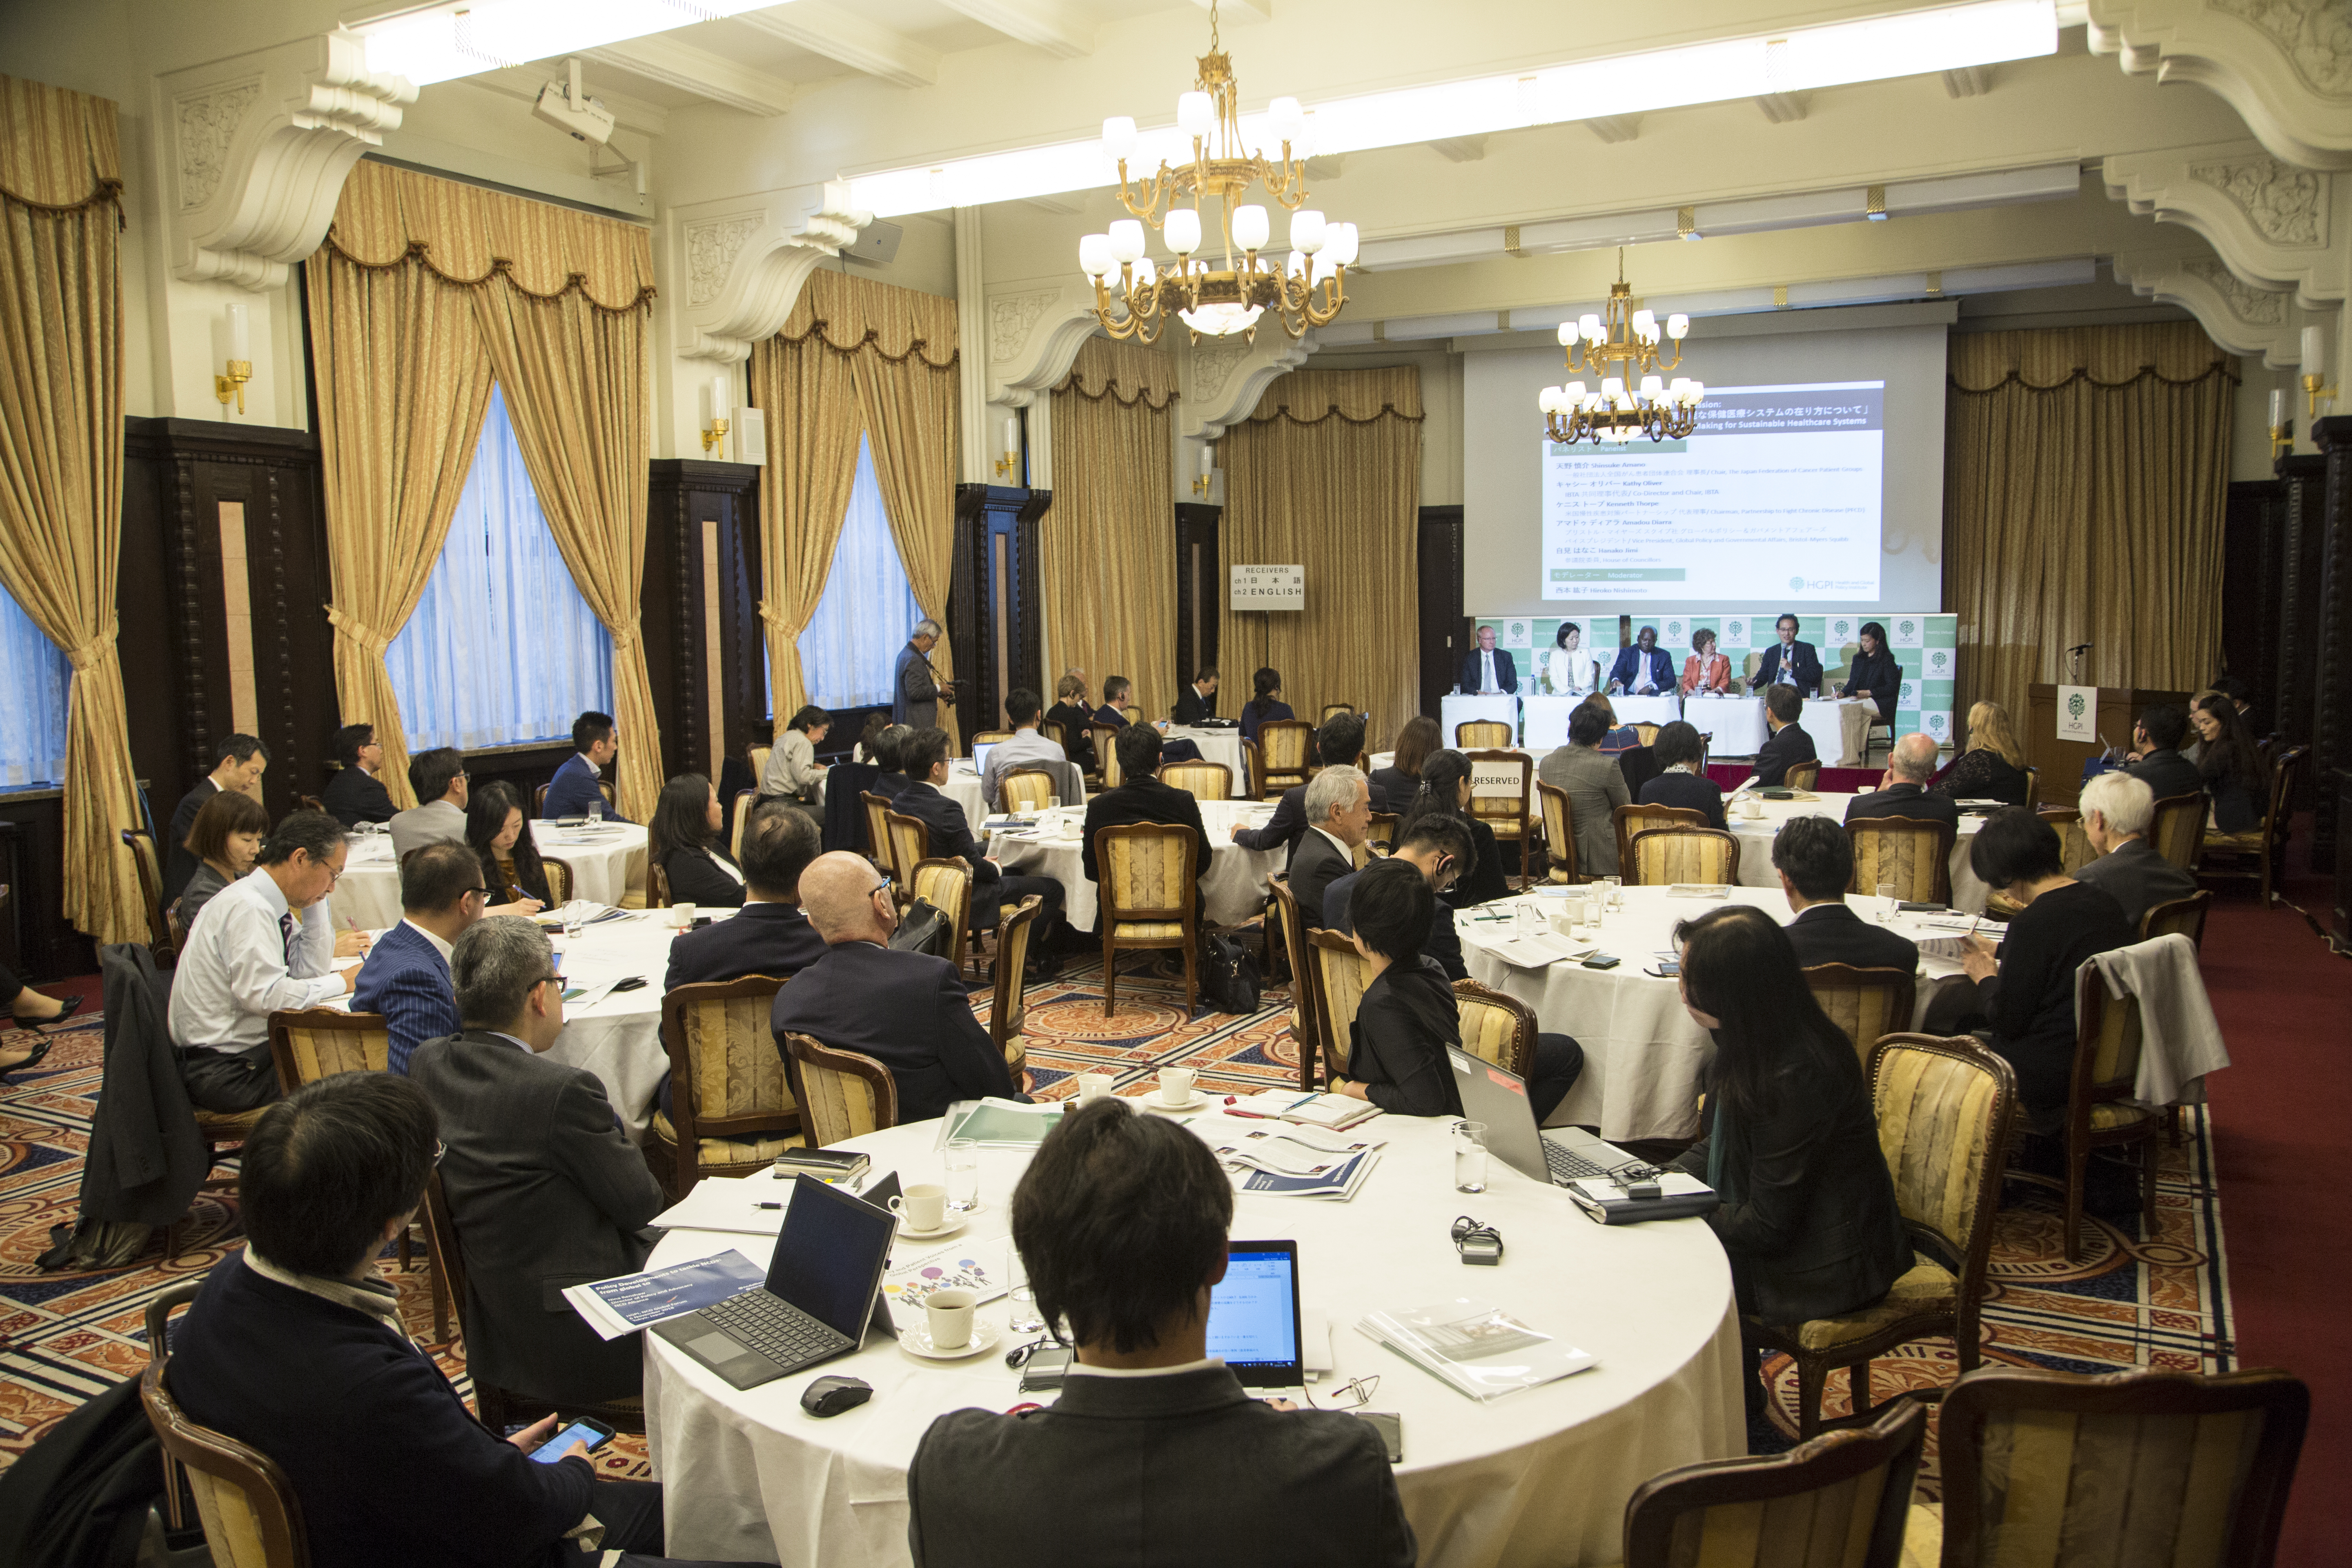 [Event Report] NCD Global Forum for Civil Society, Cancer Session – Patient Leader Workshops and Global Expert Forum (November 6, 2018)